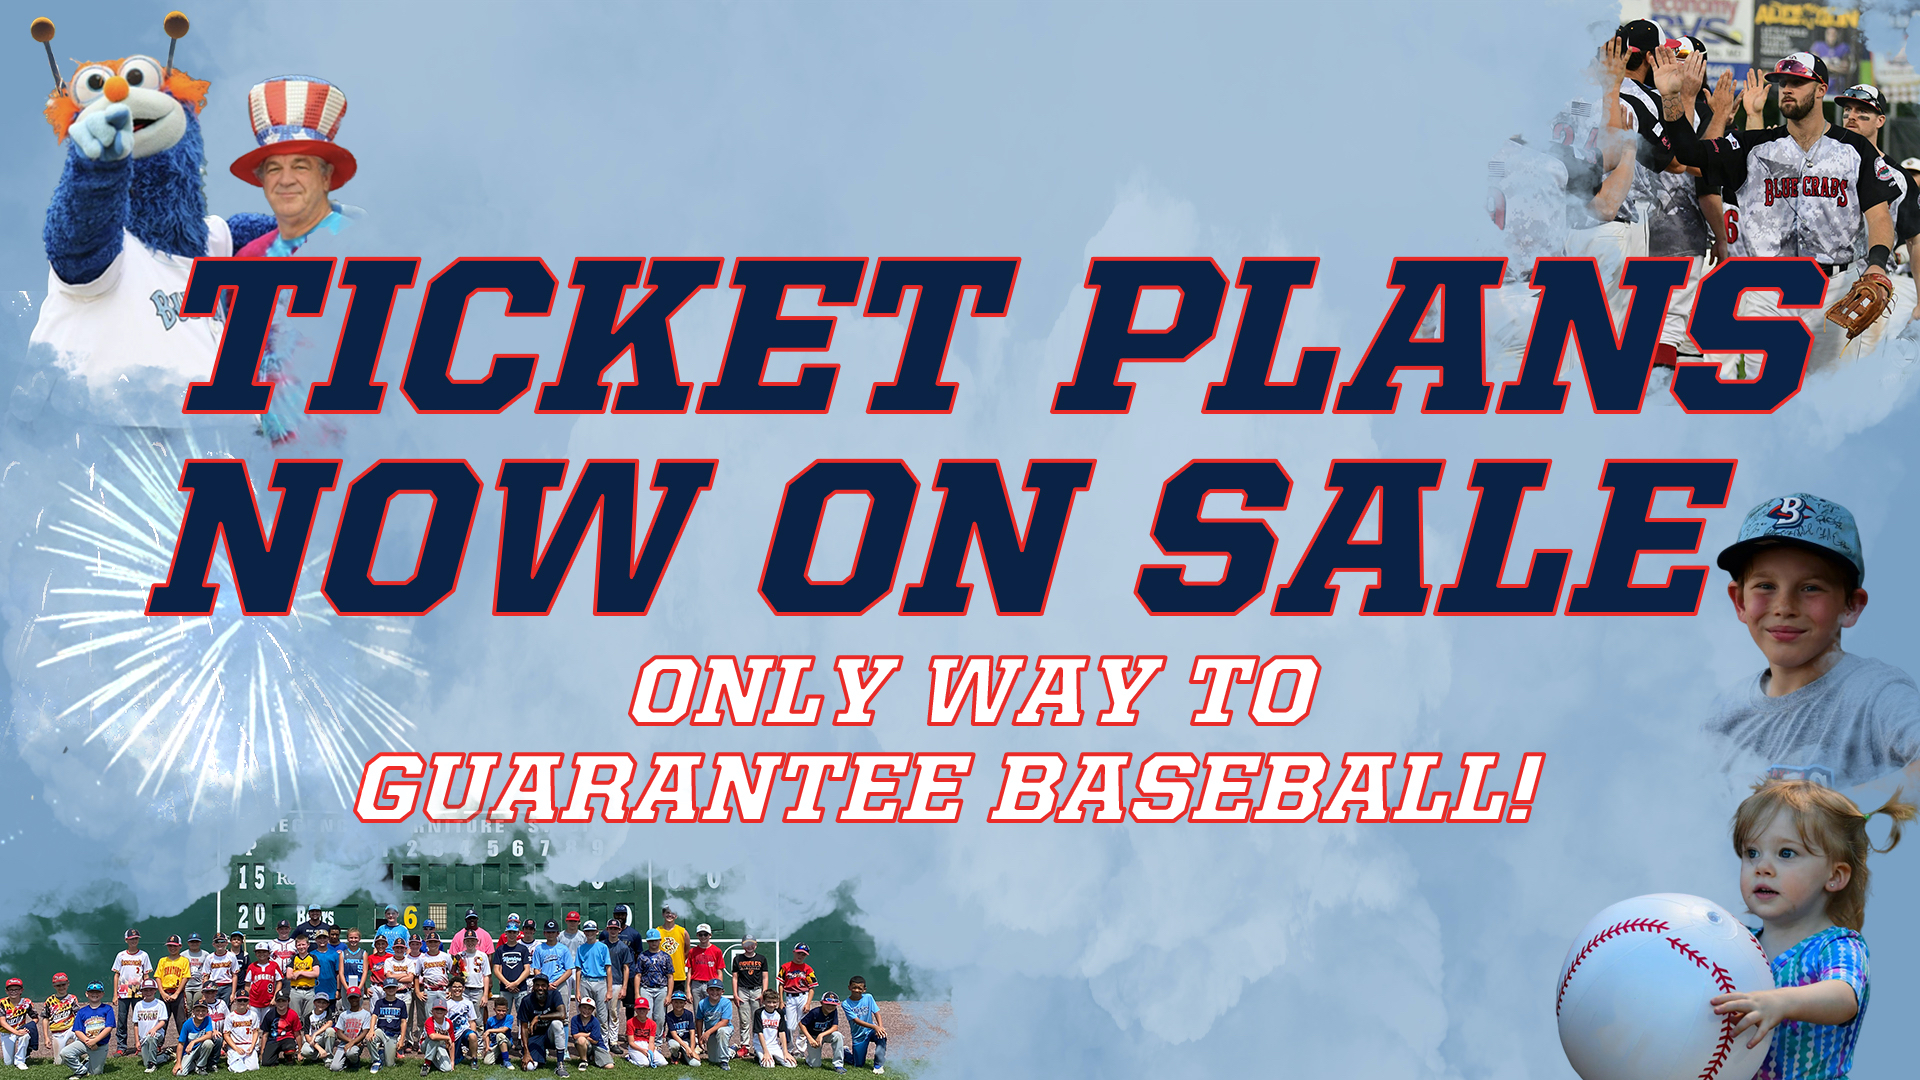 Blue Crabs Ticket Plans On Sale